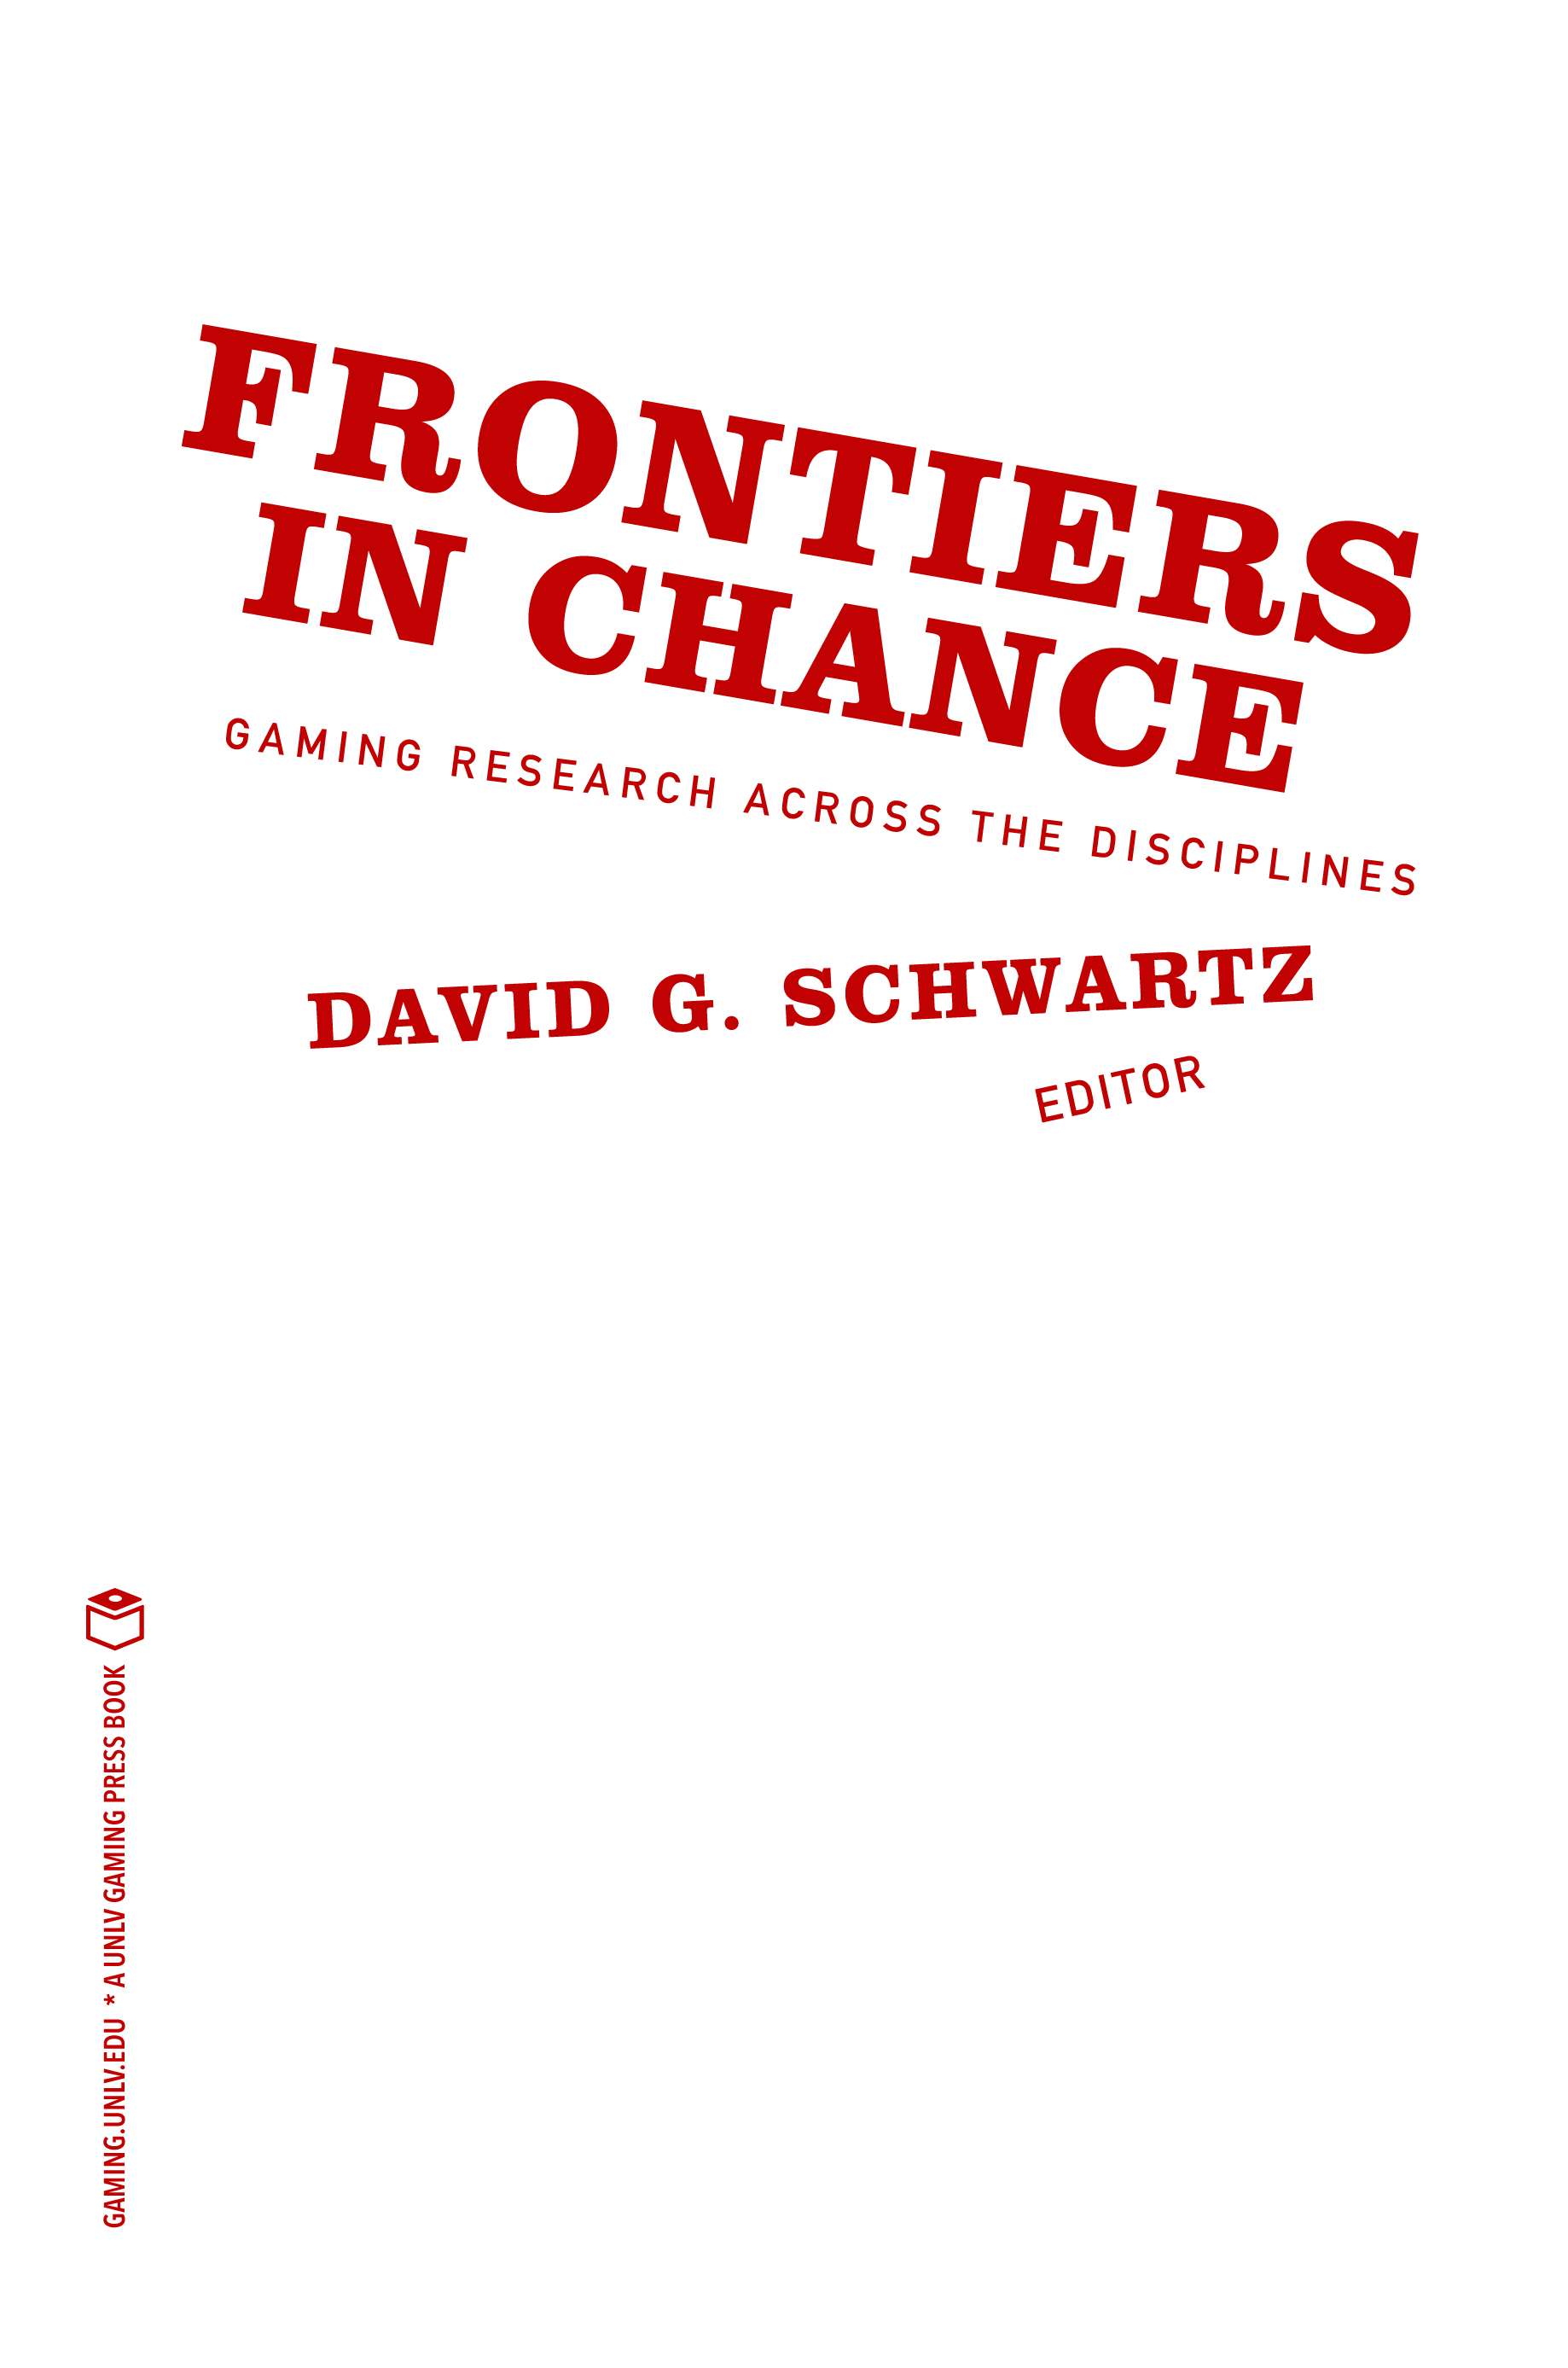 Frontiers in Chance: Gaming Research Across the Disciplines